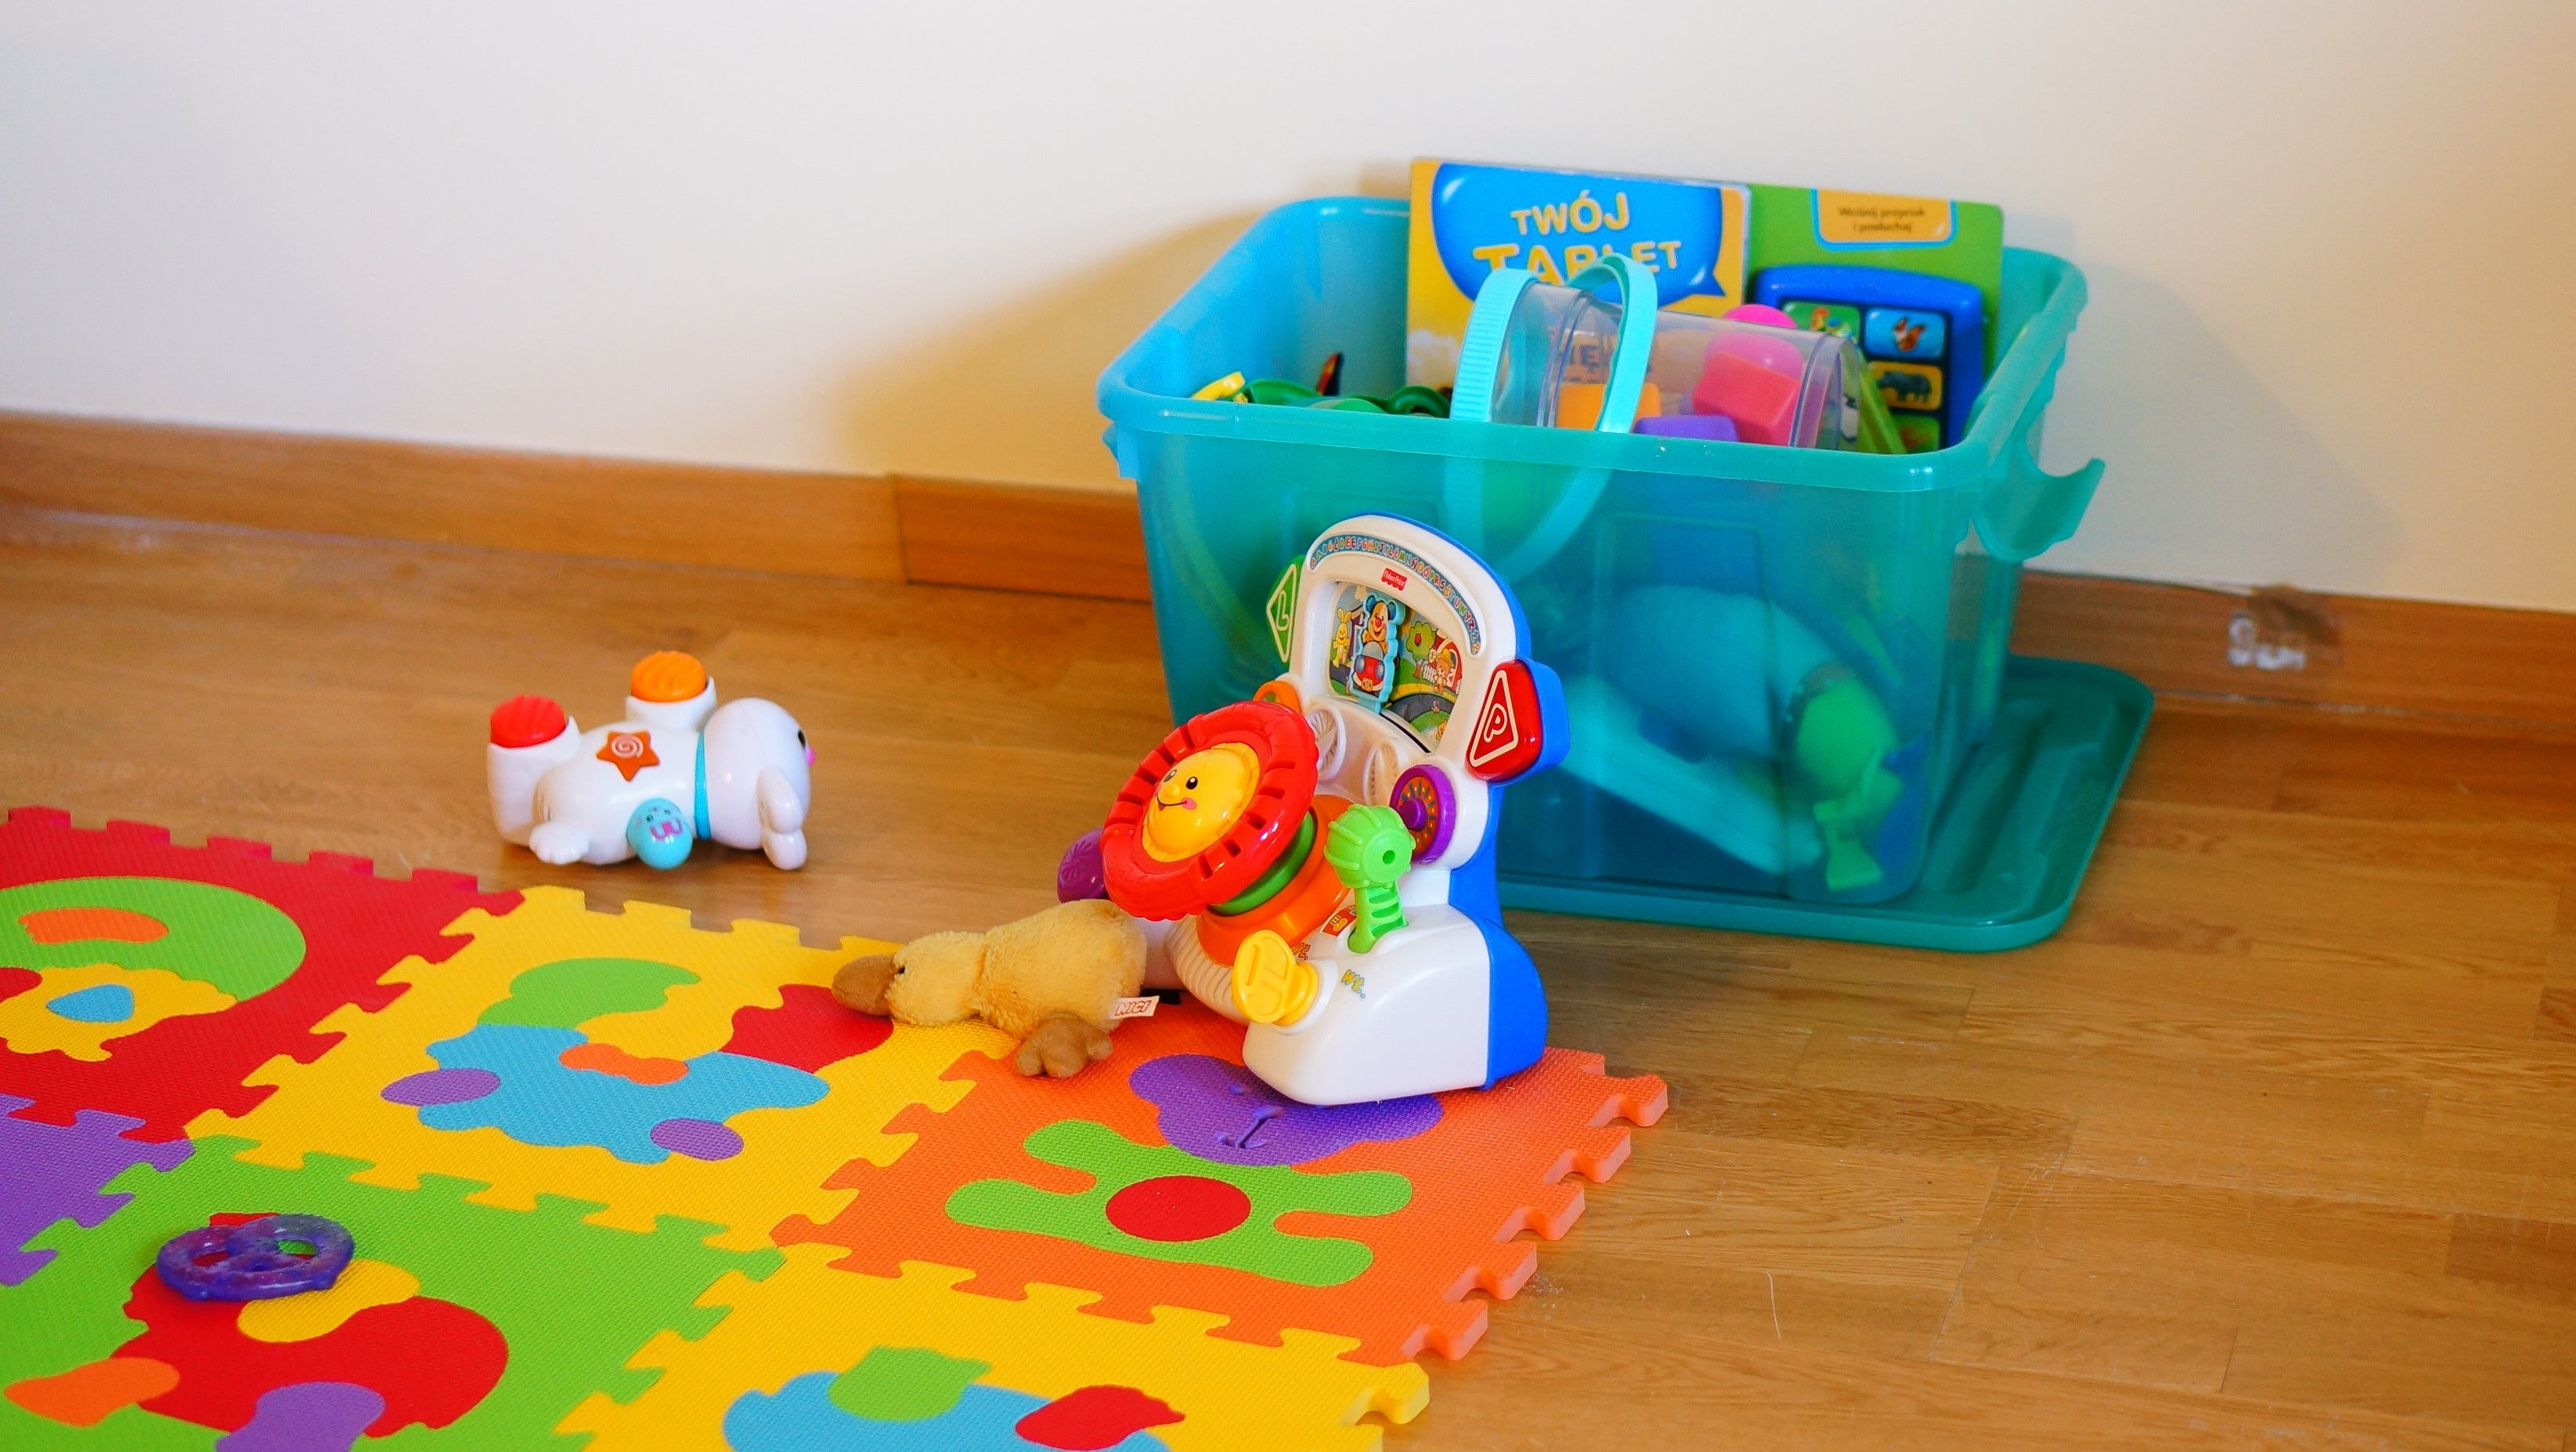 How To Quieten Down Your Toddler's Noisy Toys